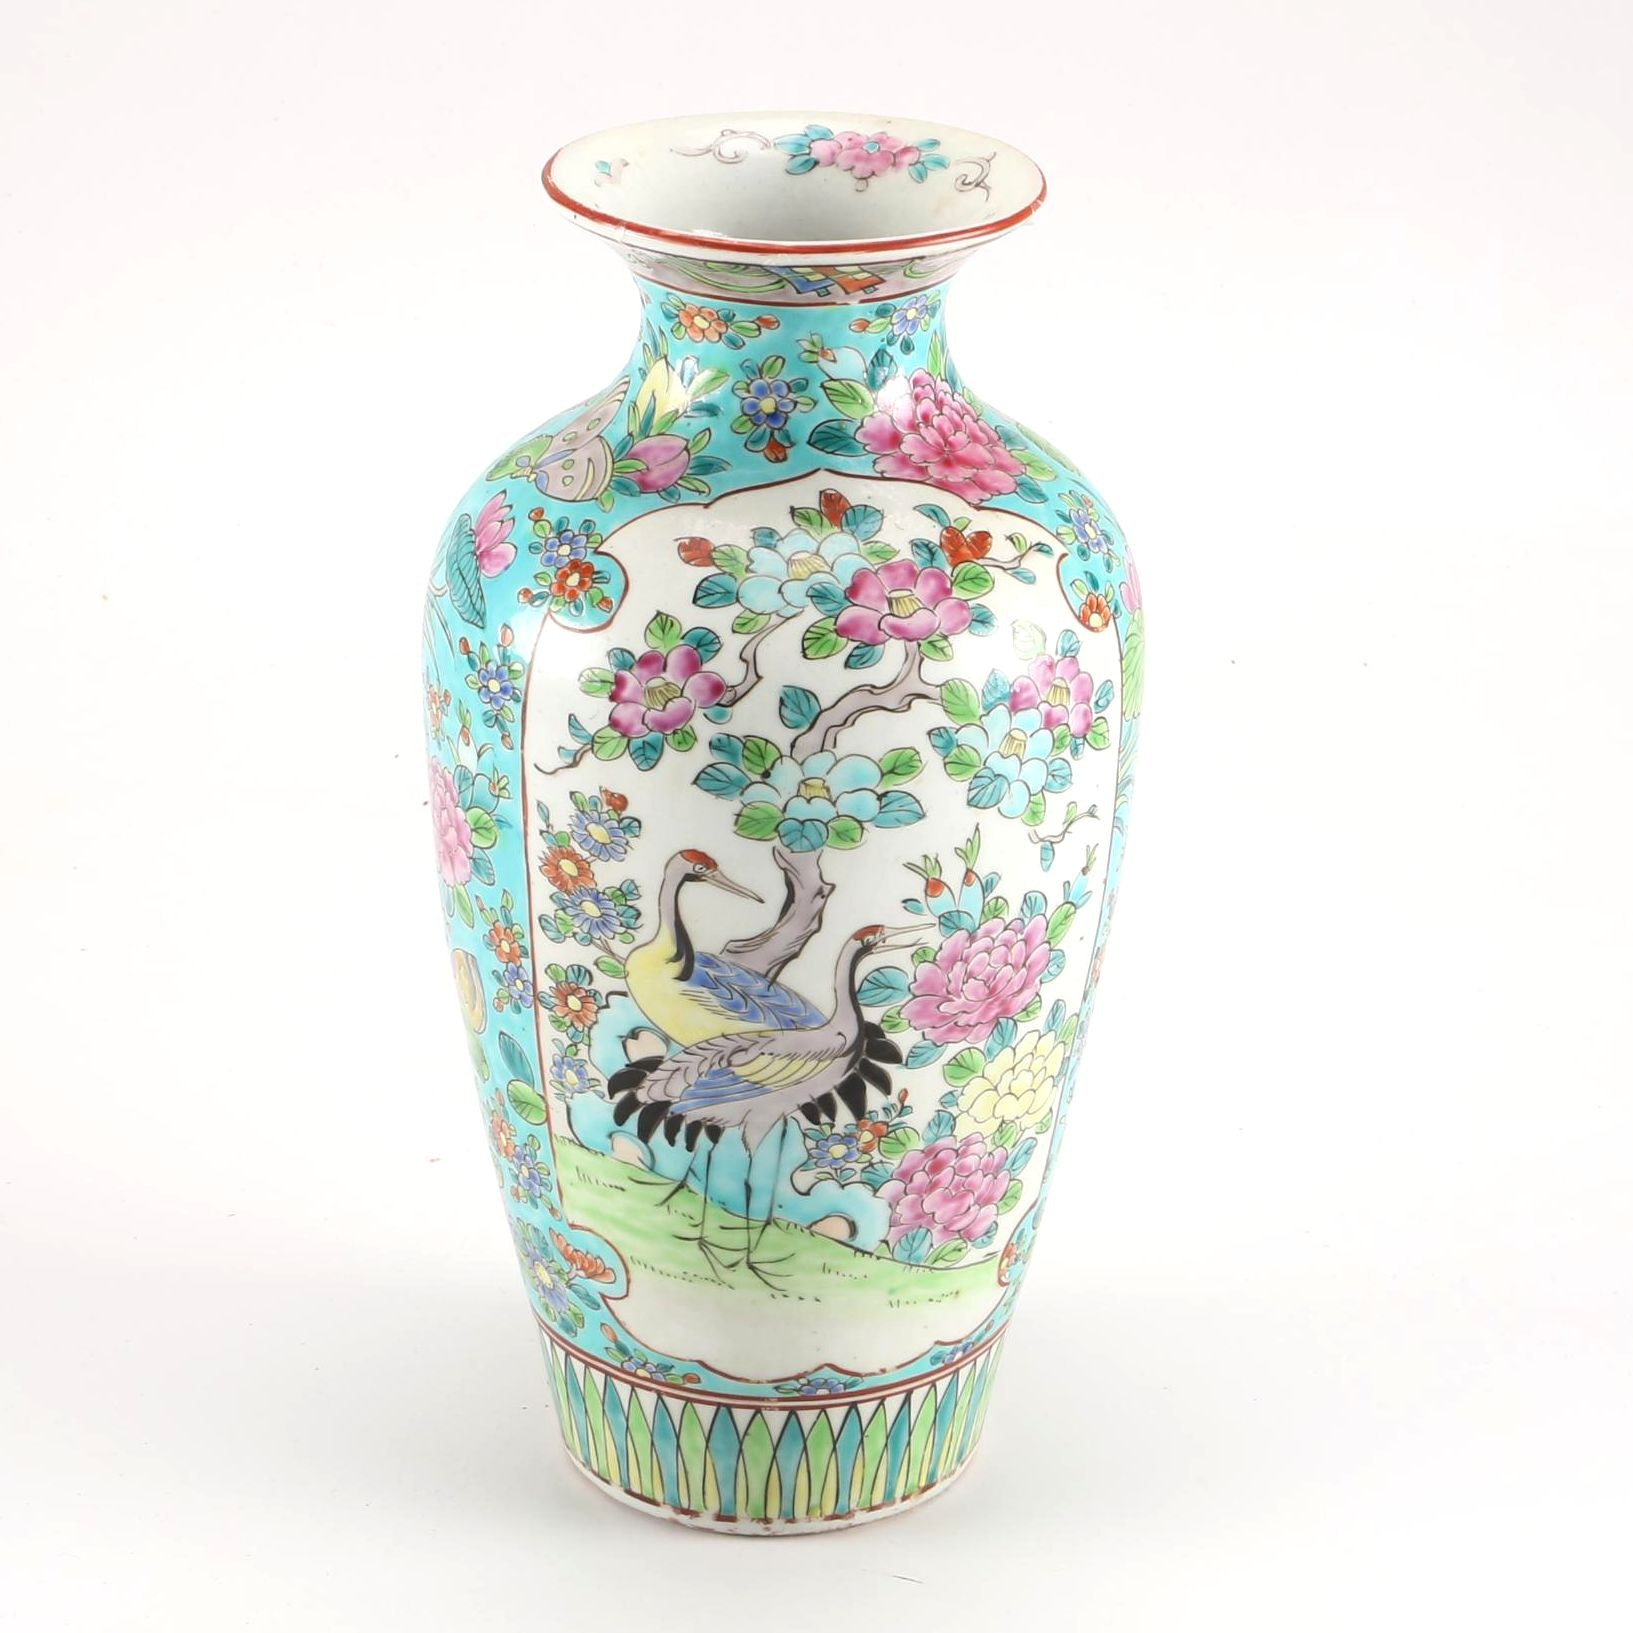 Chinese Porcelain Vase With Floral Designs